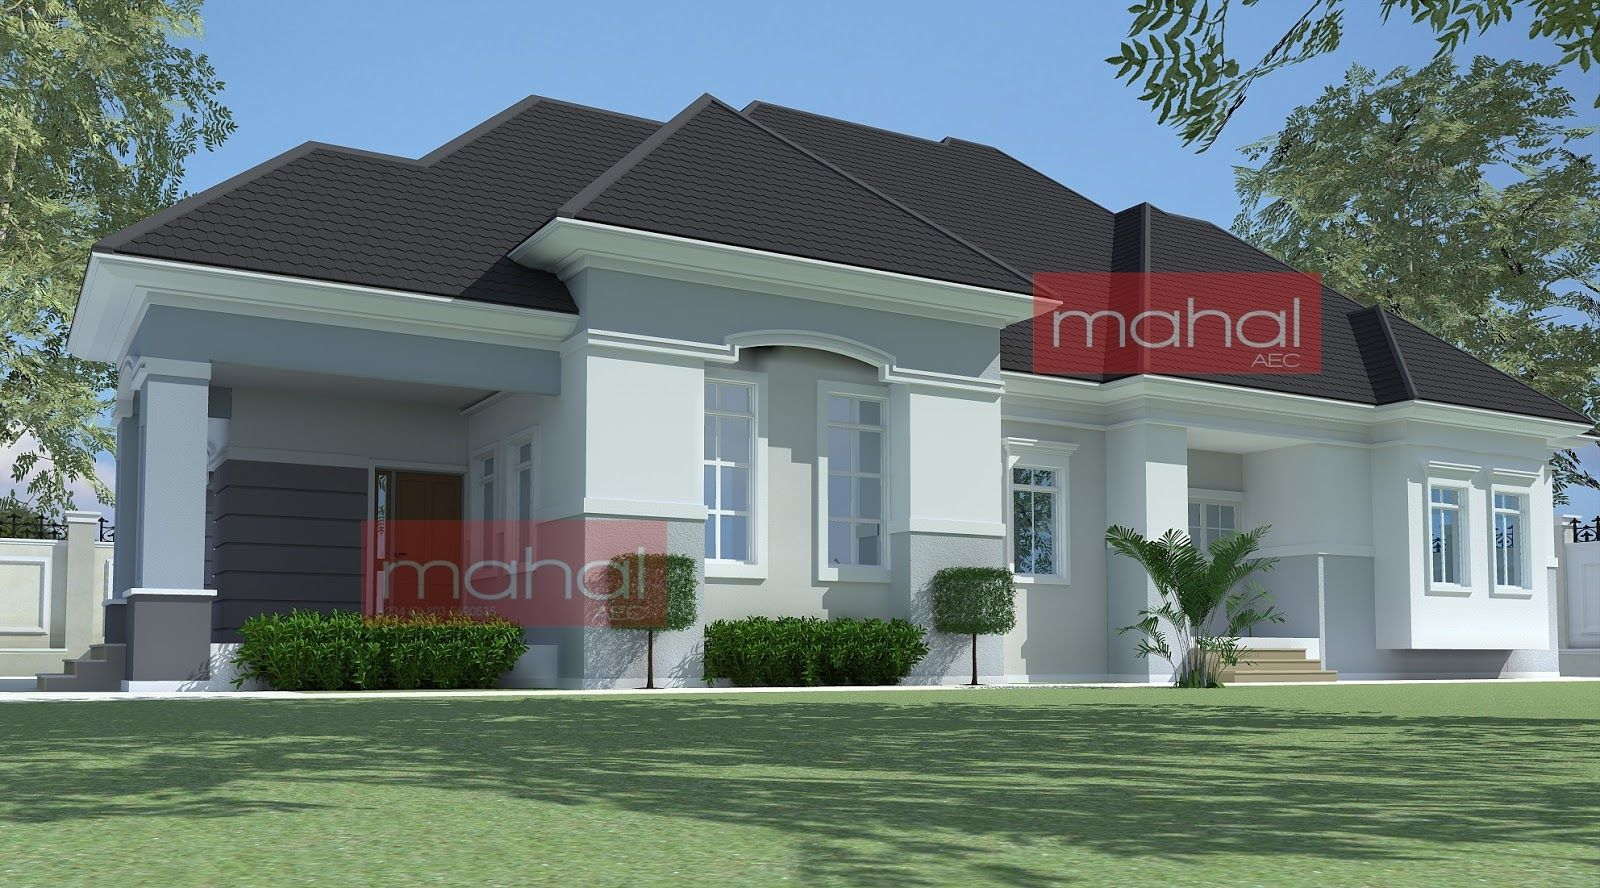 4 bedroom bungalow plan in nigeria 4 bedroom bungalow for Building exterior design